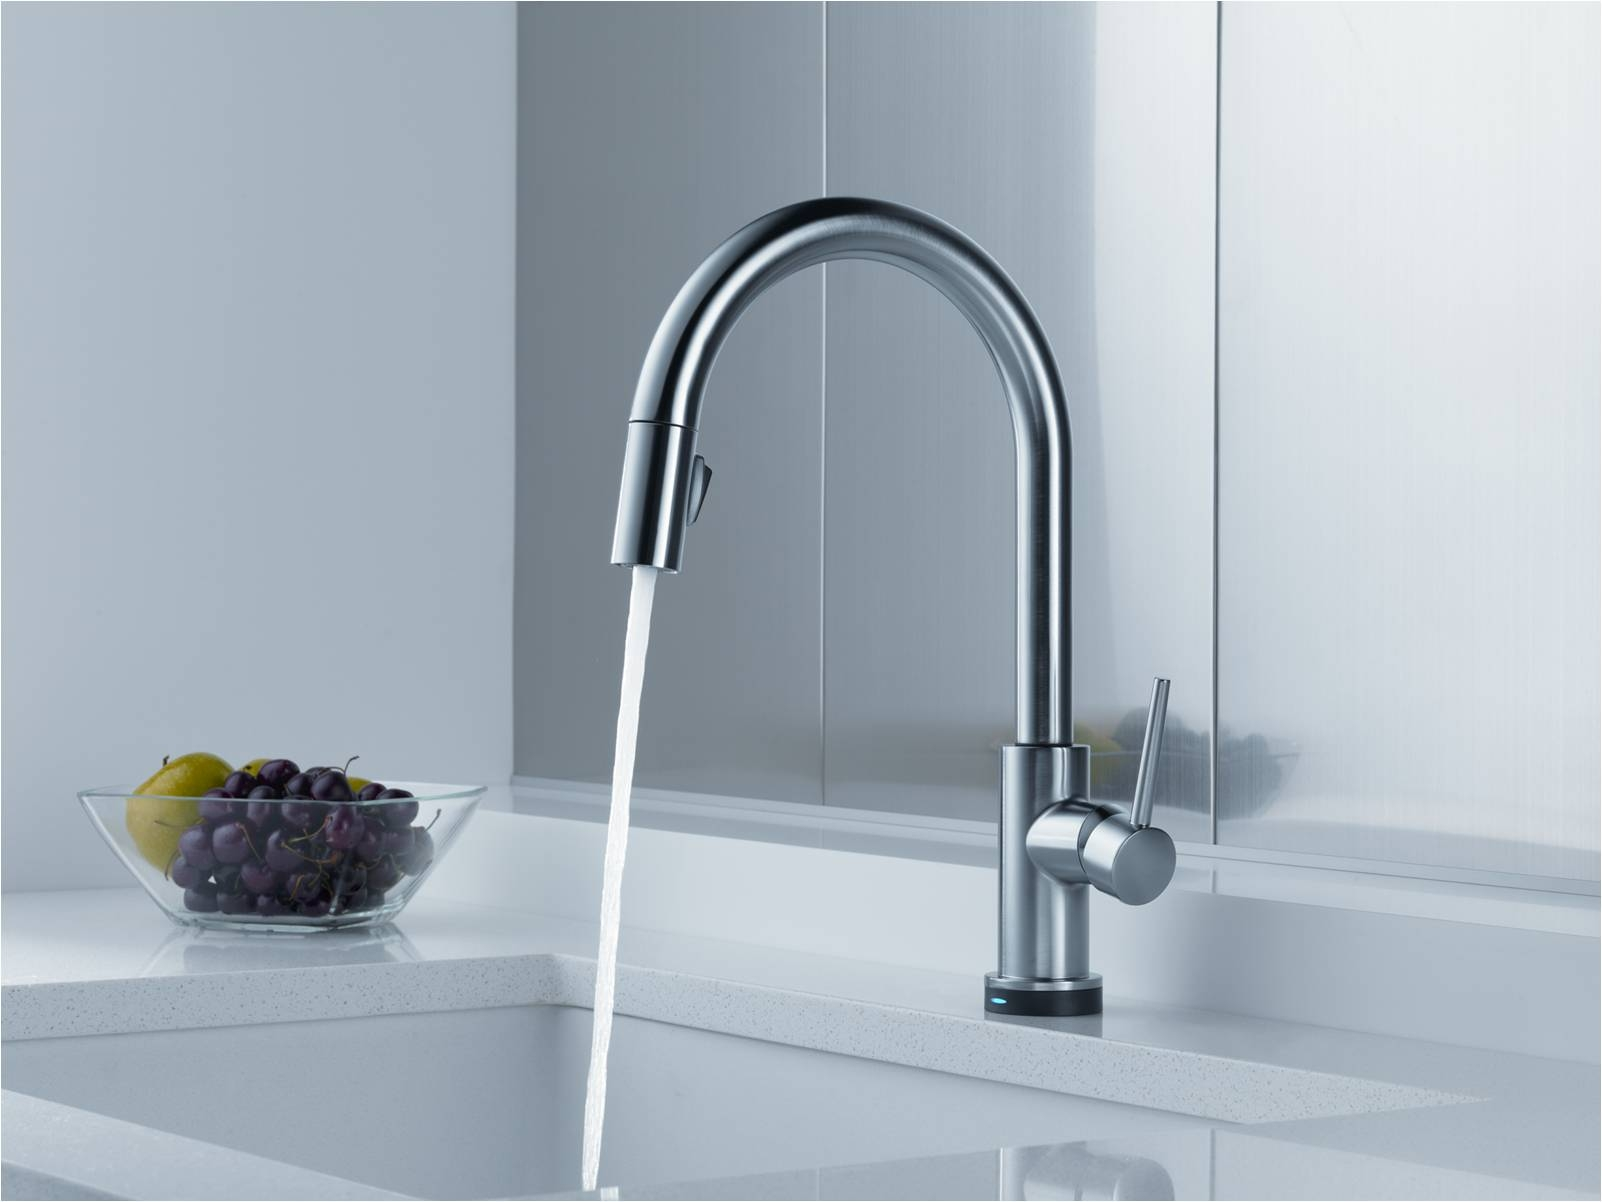 delta farm sink faucets delta farm sink faucets dining kitchen make your kitchen looks elegant with lavish 1602 x 1202